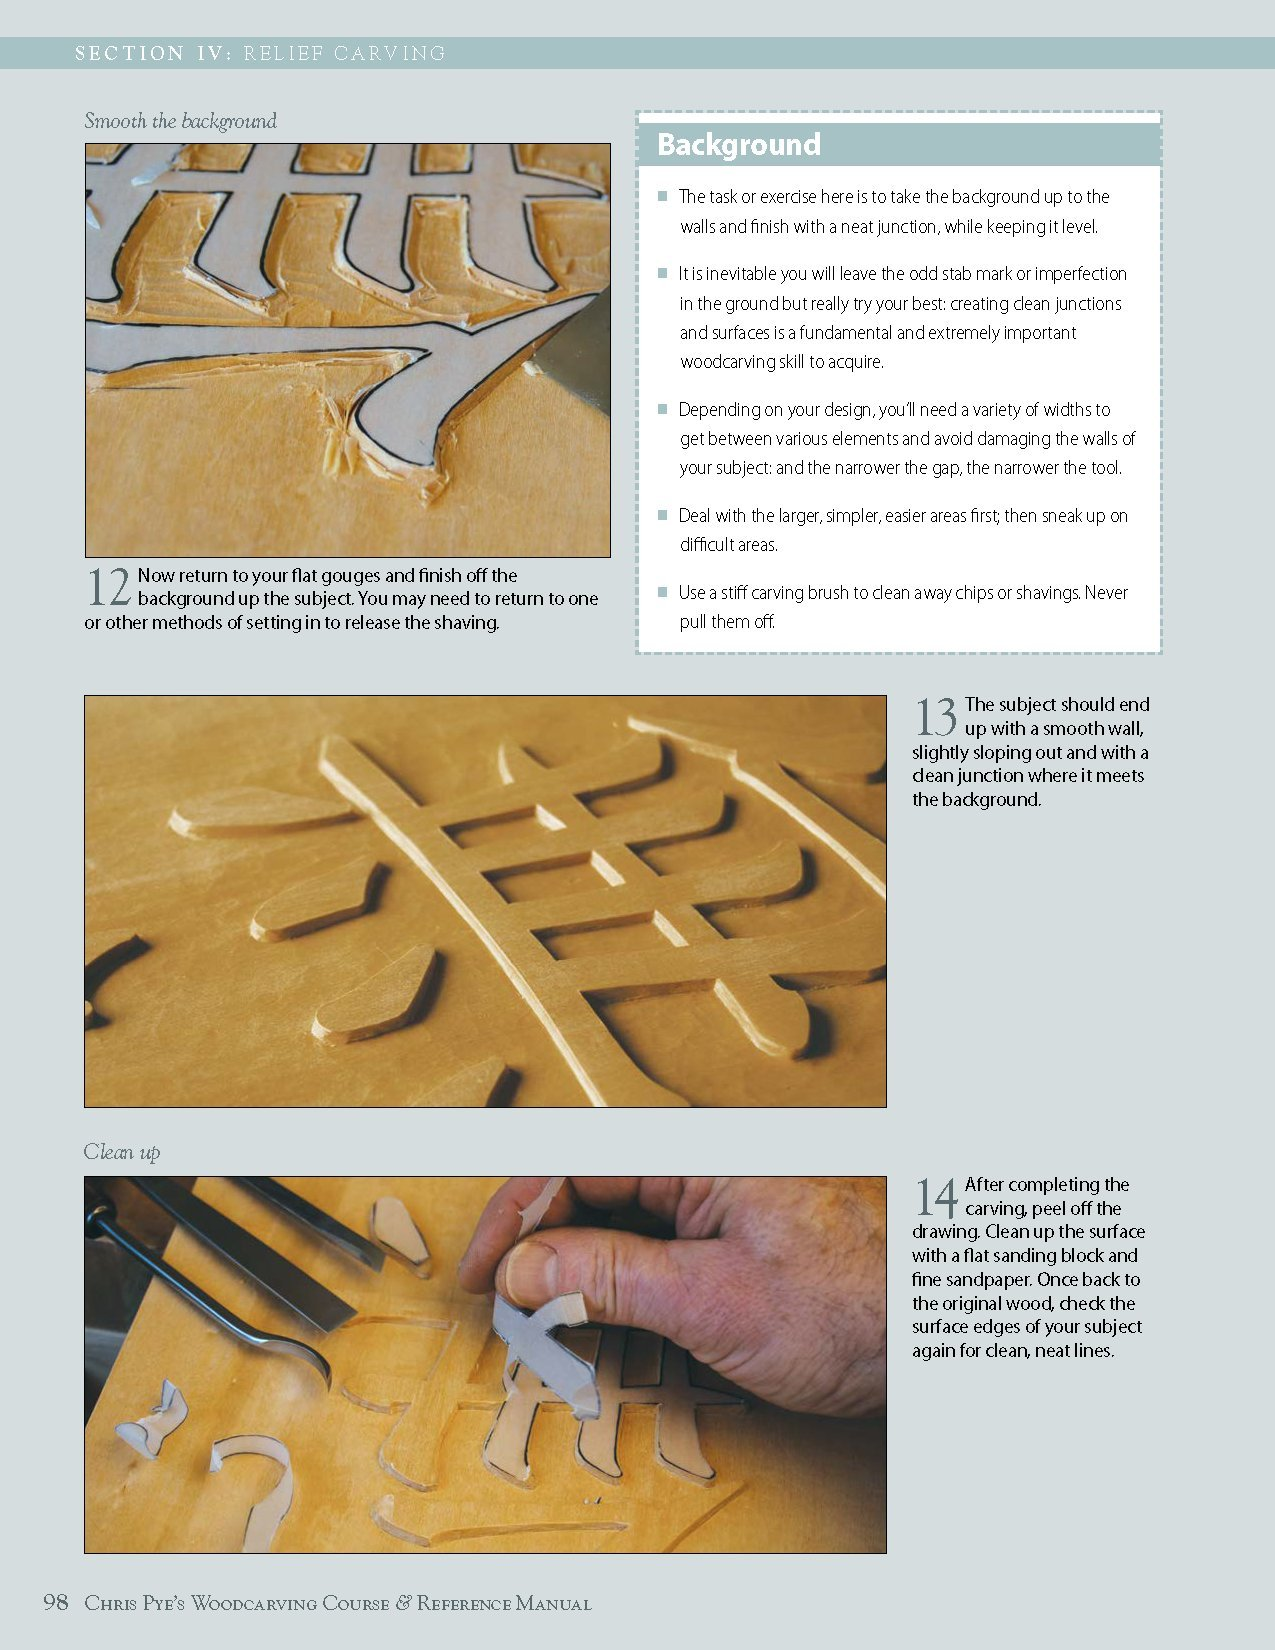 Chris pyes woodcarving course & reference manual: a beginners